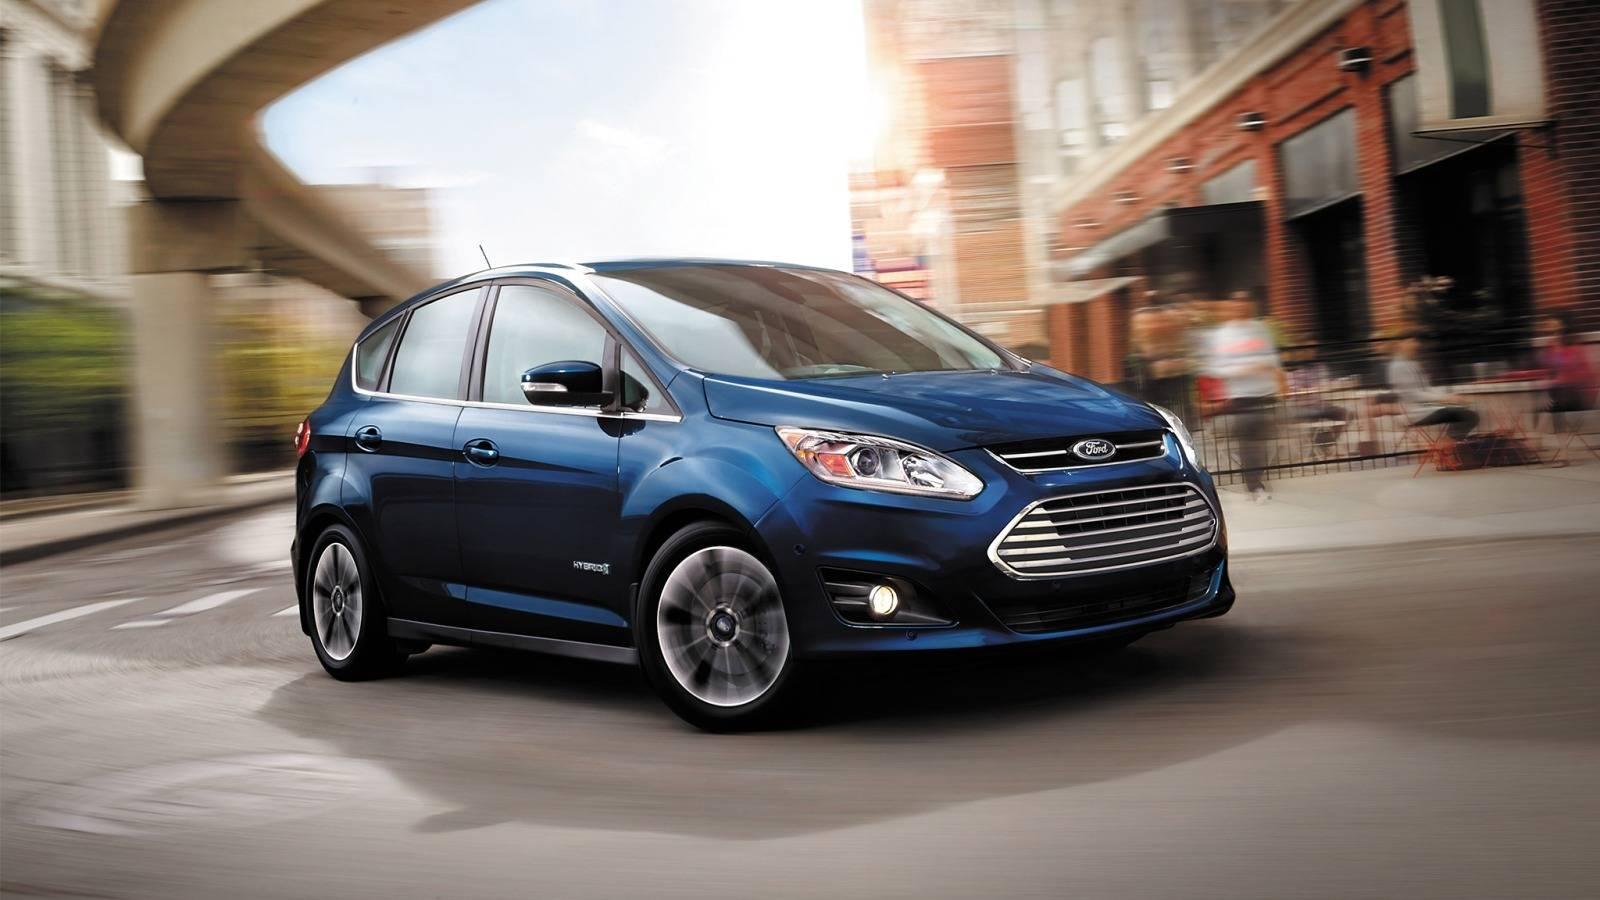 Ford C-Max in Wilmington